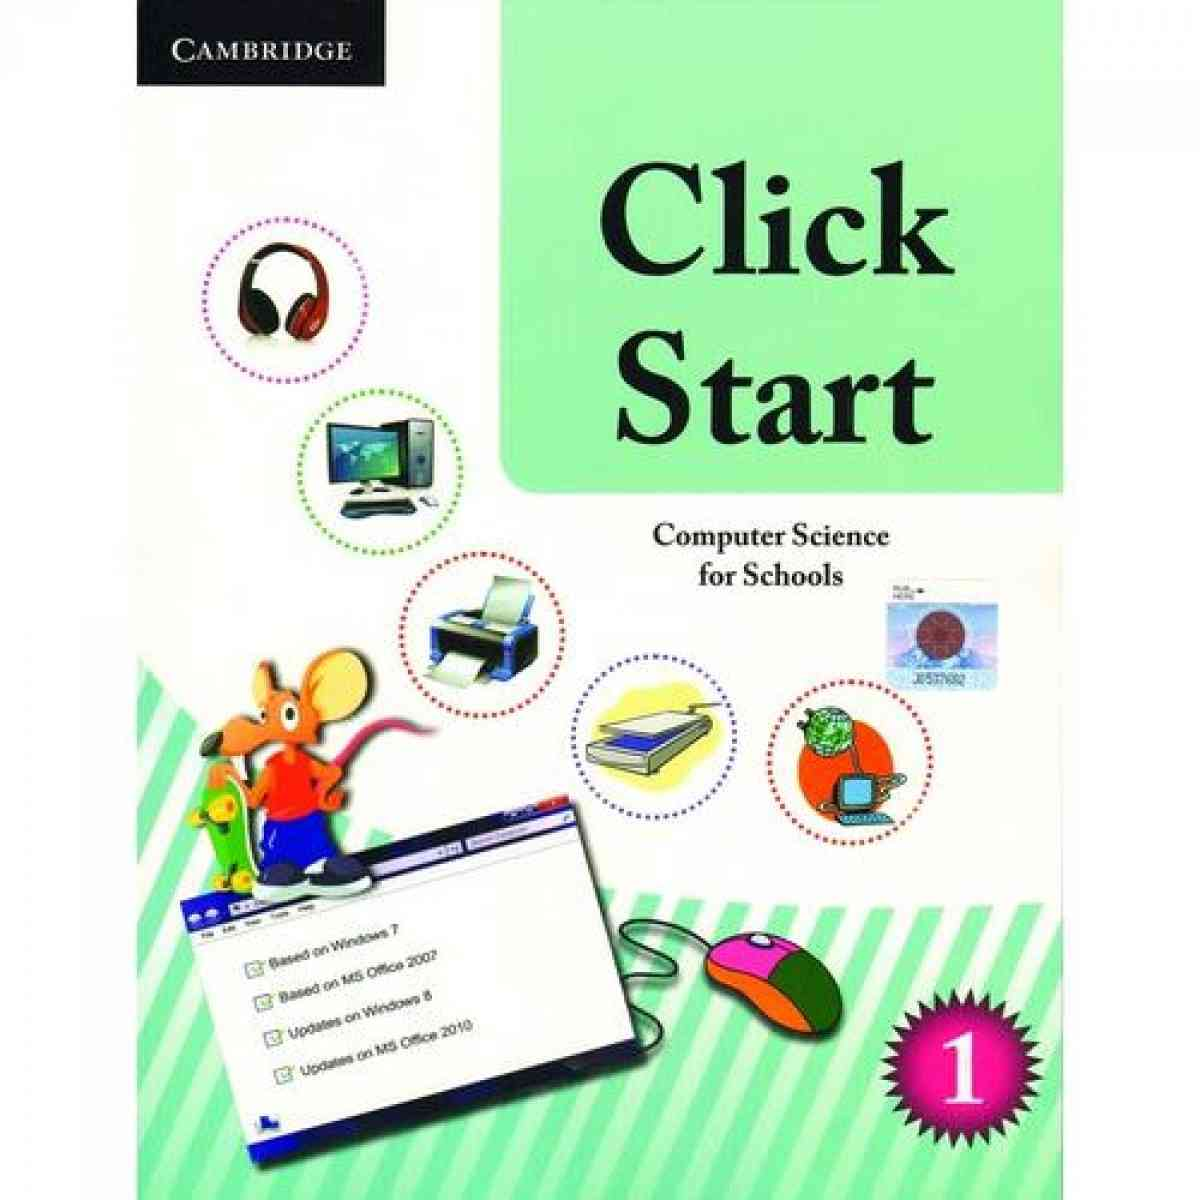 CAMBRIDGE UNIVERSITY PRESS Click Start: Computer Science For Schools Pakistan Edition Book 1